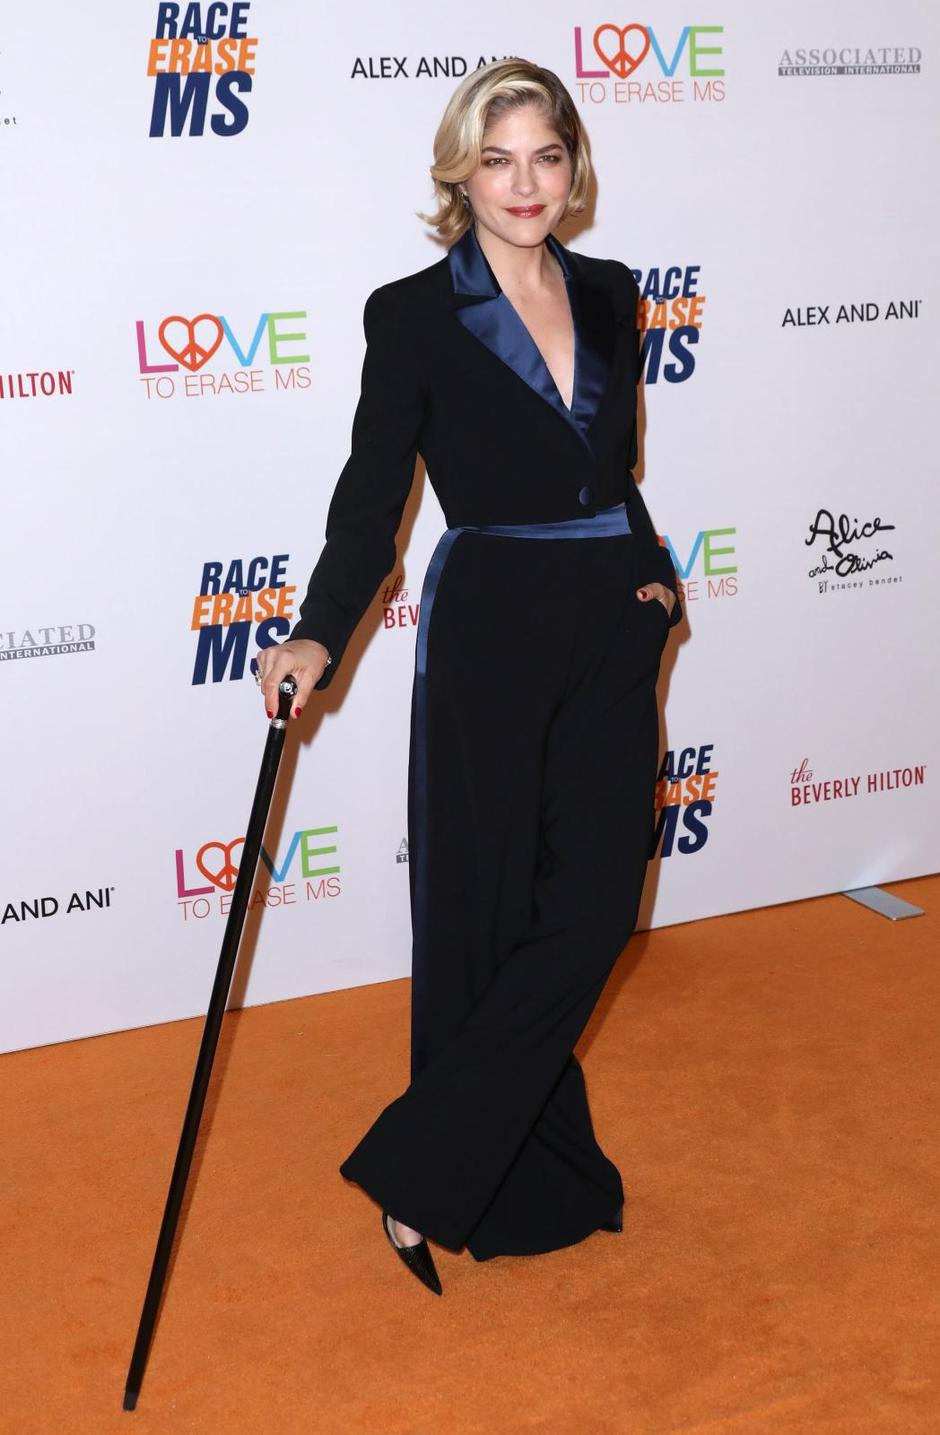 Race to Erase MS Gala 2019 - Beverly Hills | Autor: David Acosta/Press Association/PIXSELL